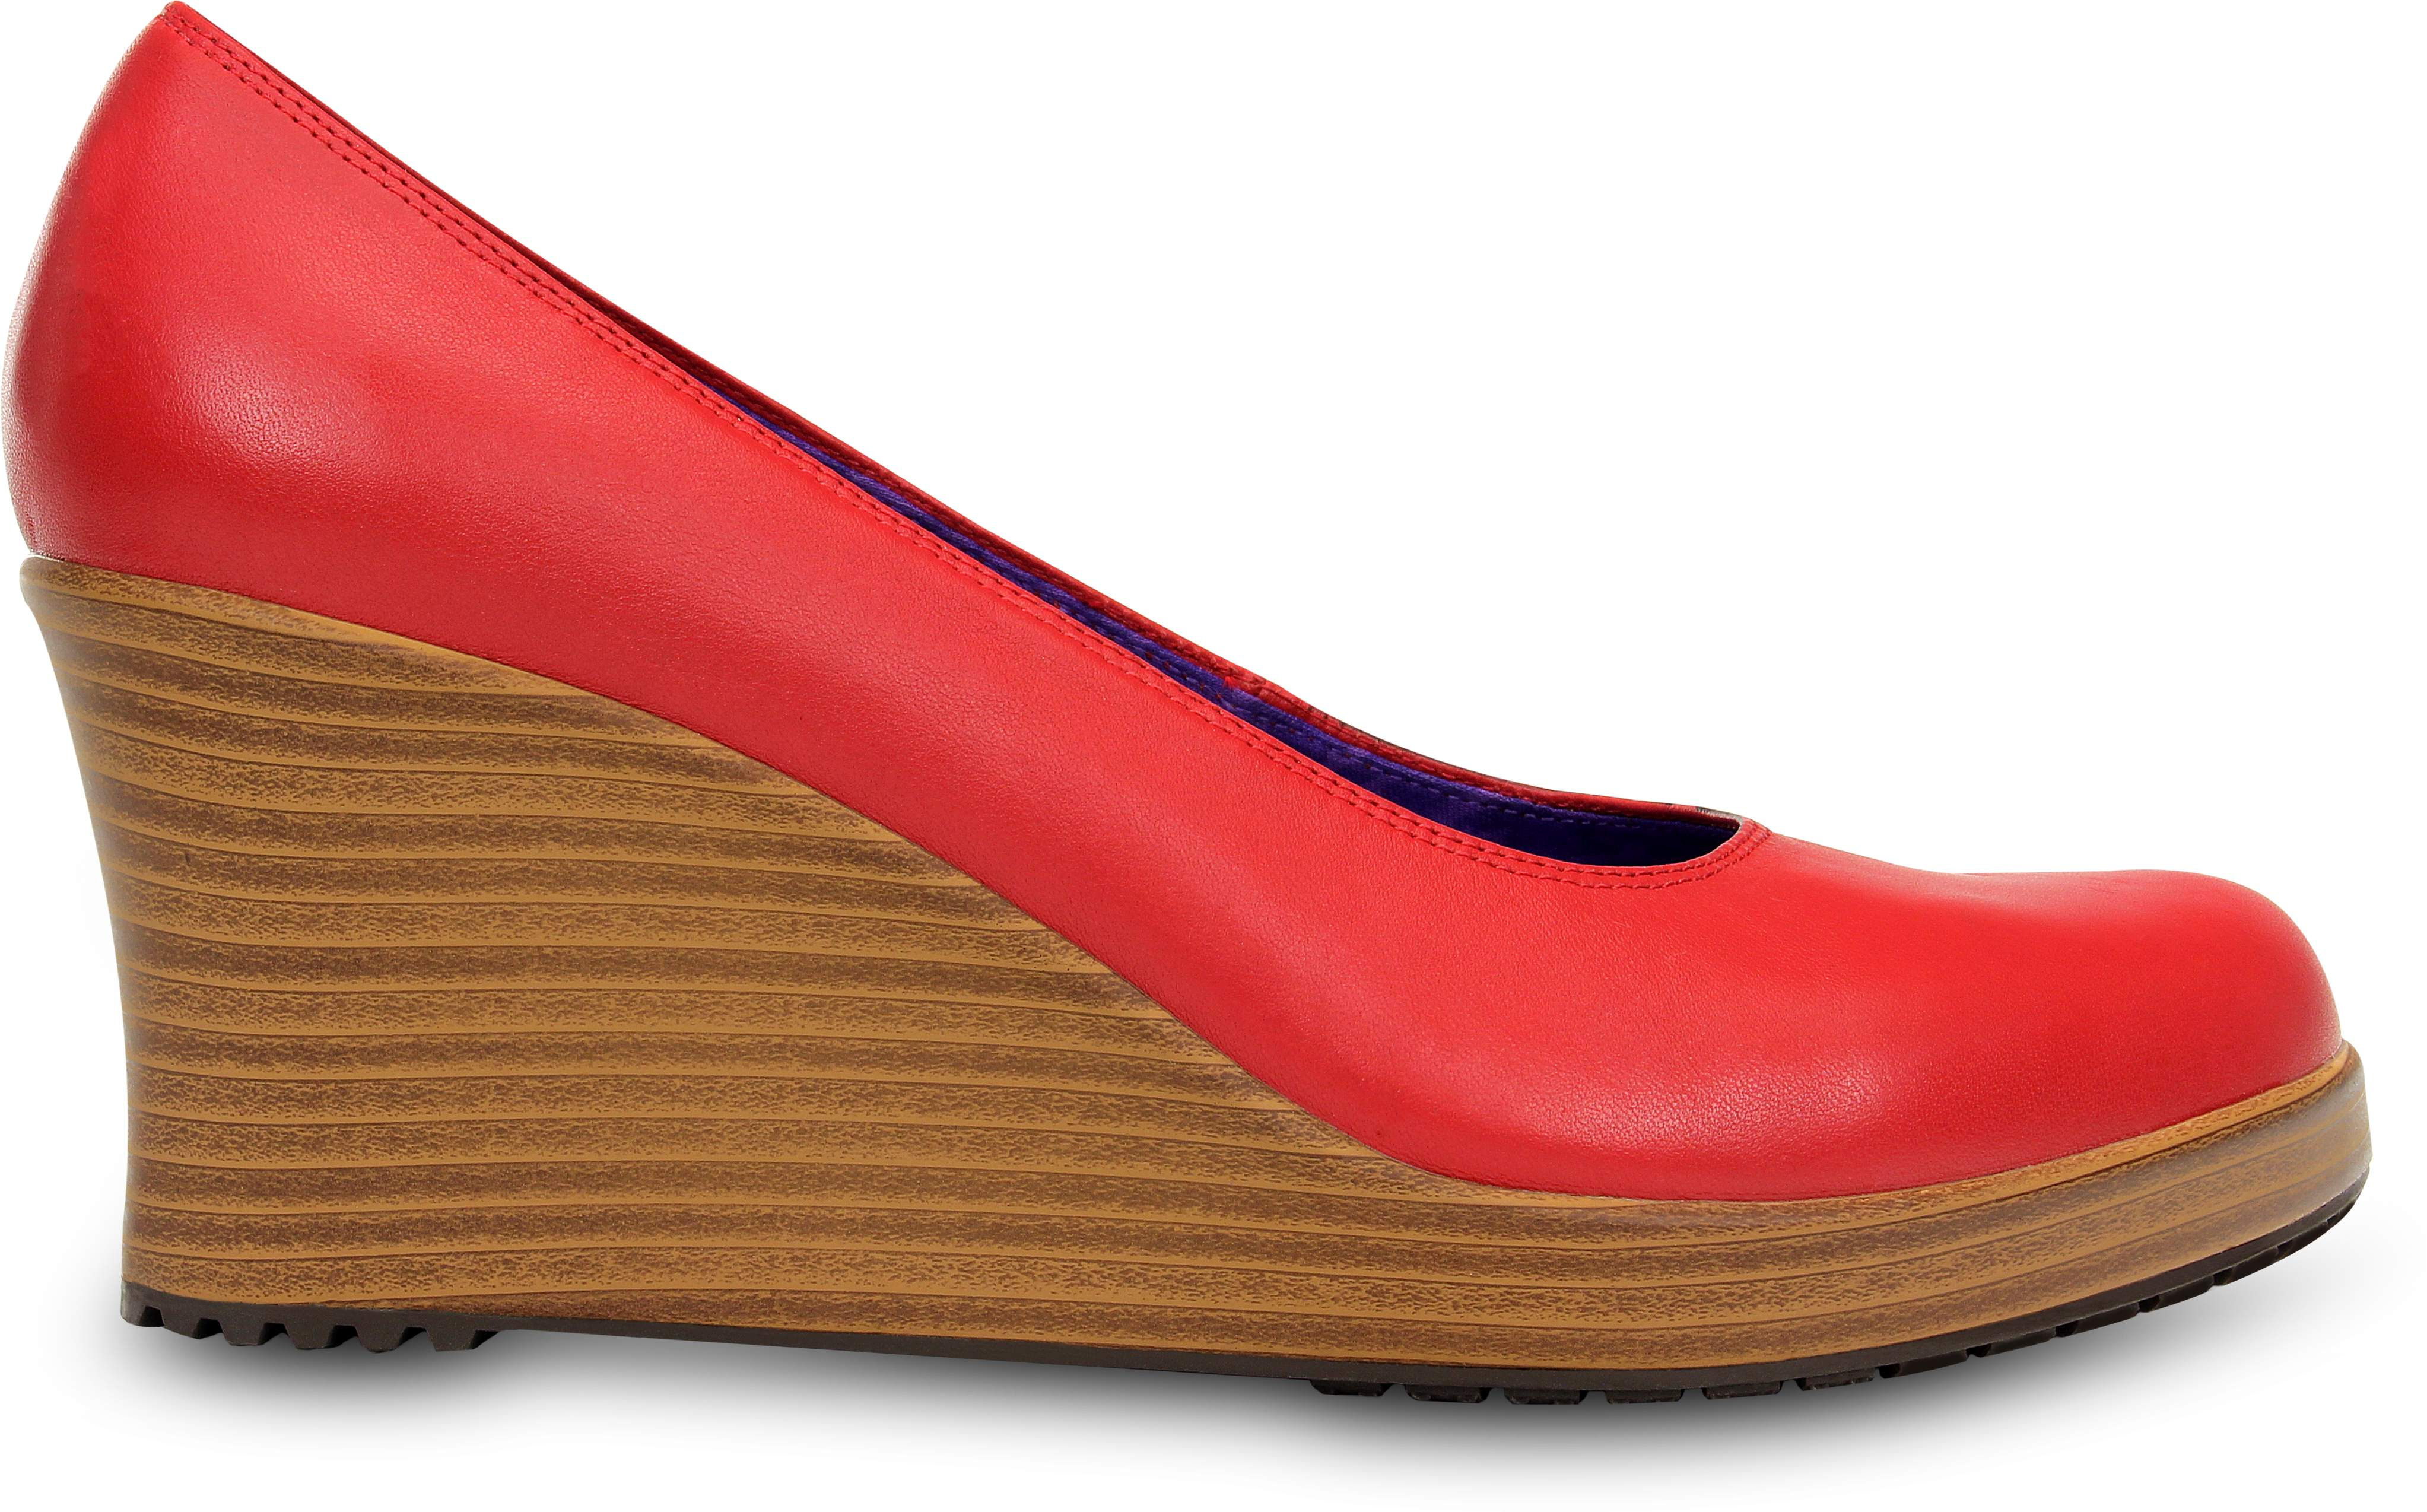 Women's A-leigh Closed-toe Wedge